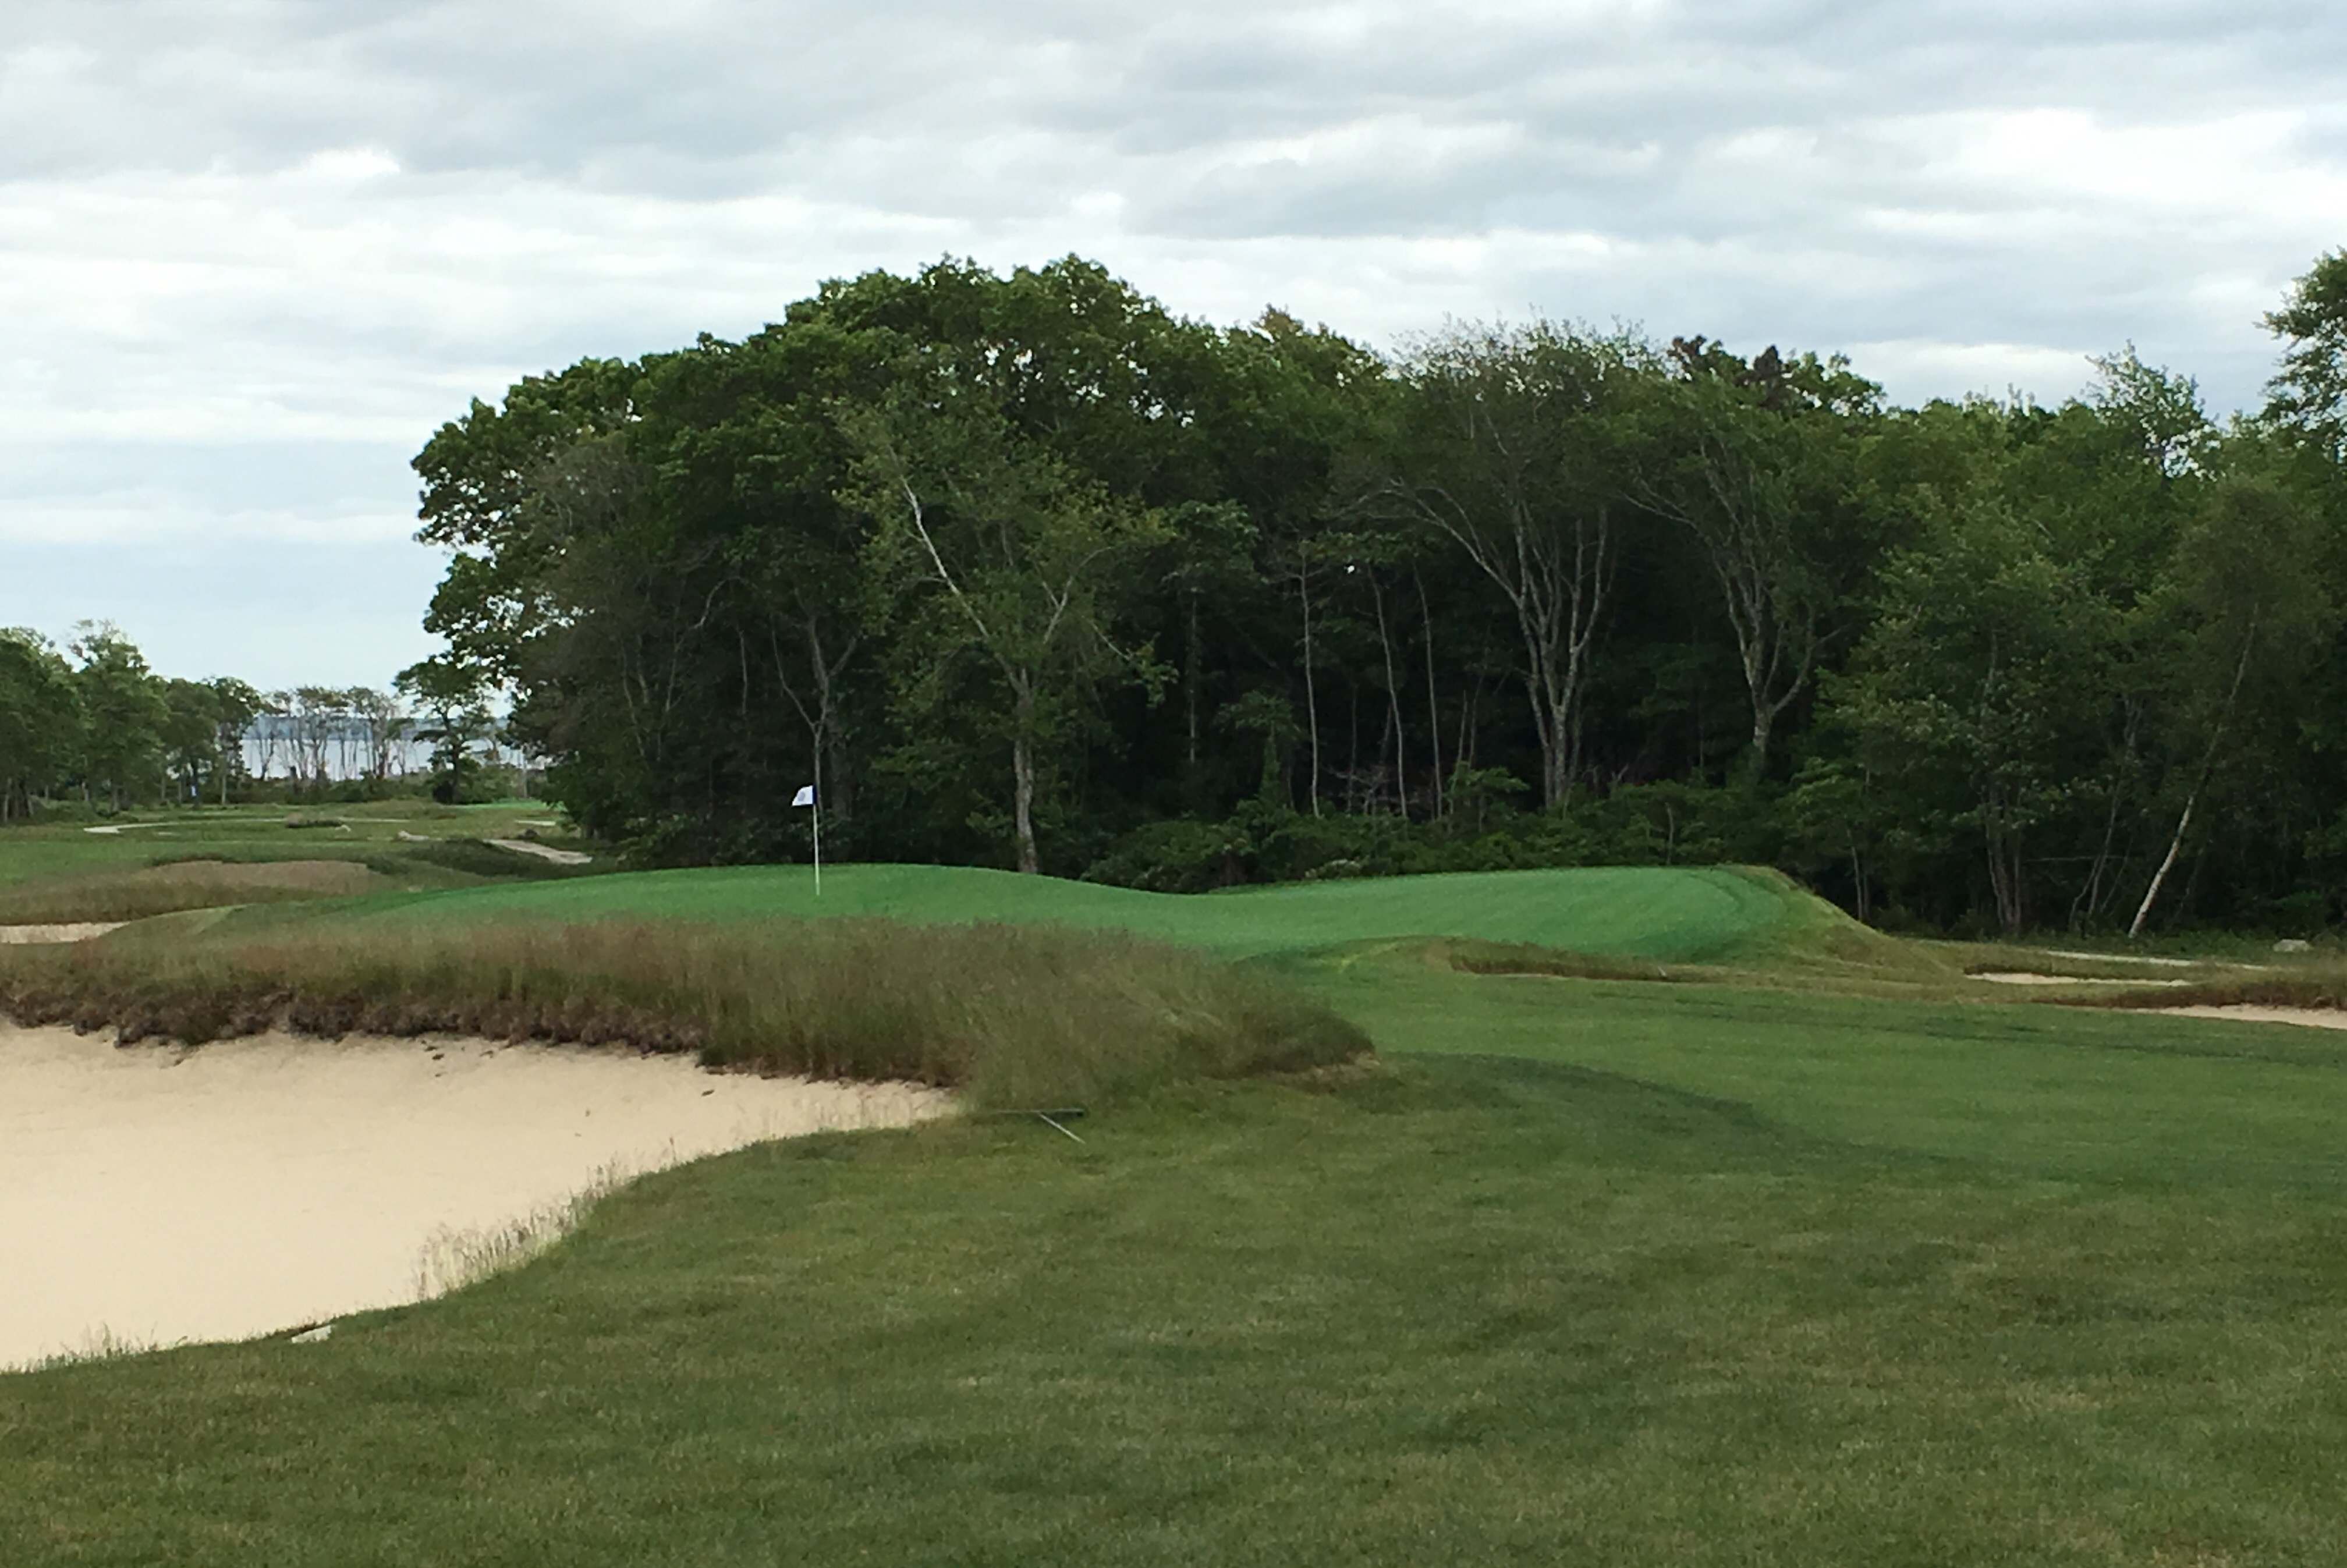 #11 - Par 3 - Approach to the wild green